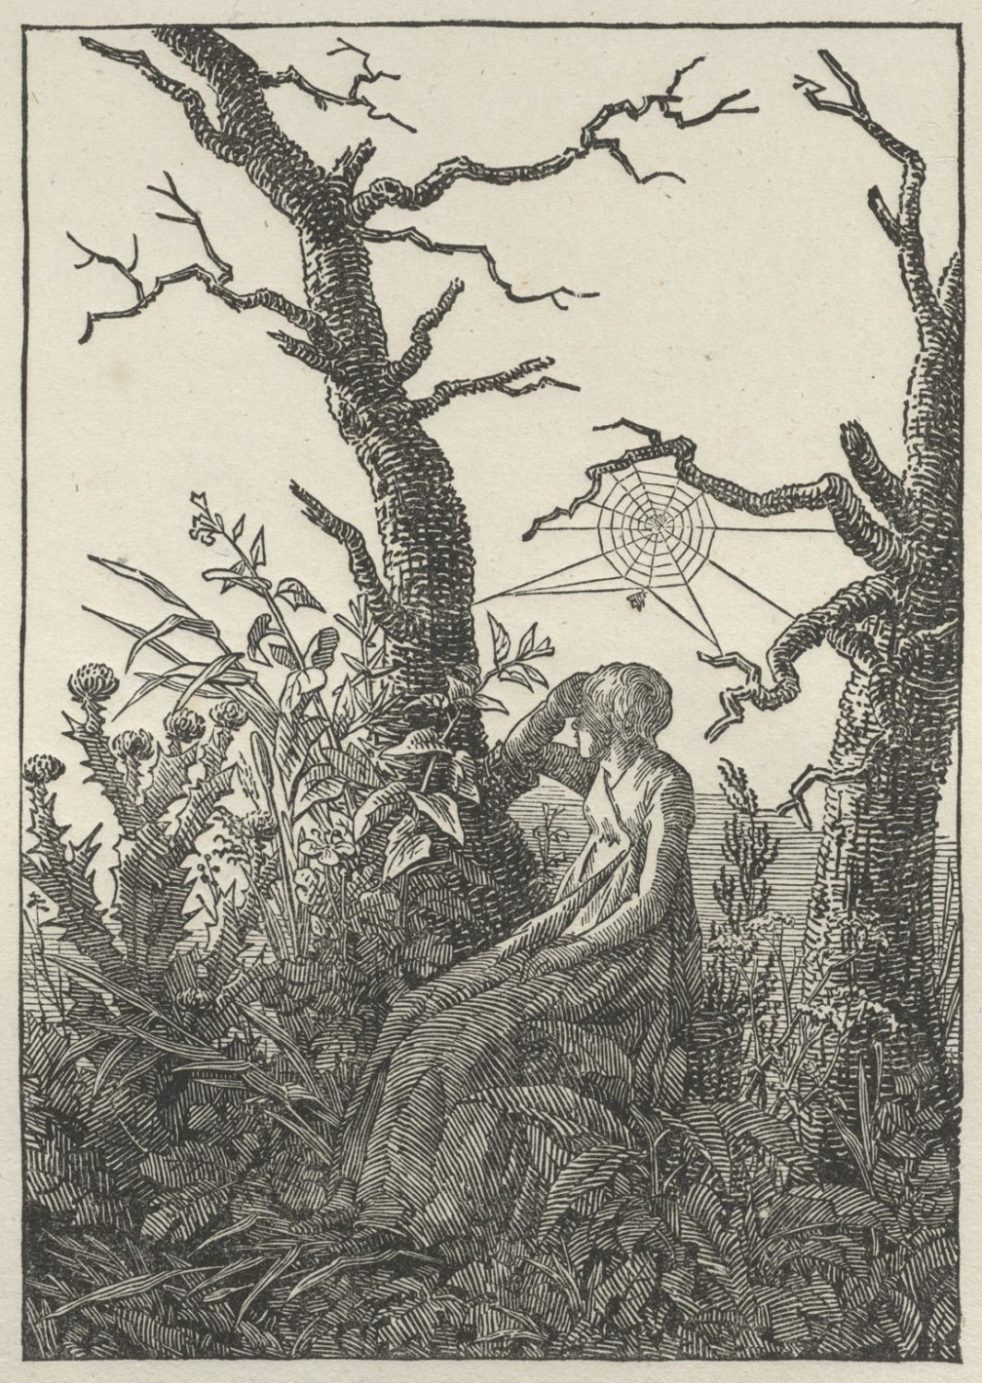 Caspar David Friedrich, Woman Seated Under a Spider's Web (Melancholy), woodcut, c. 1803 (detail), Philadelphia Museum of Art 1993-128-1